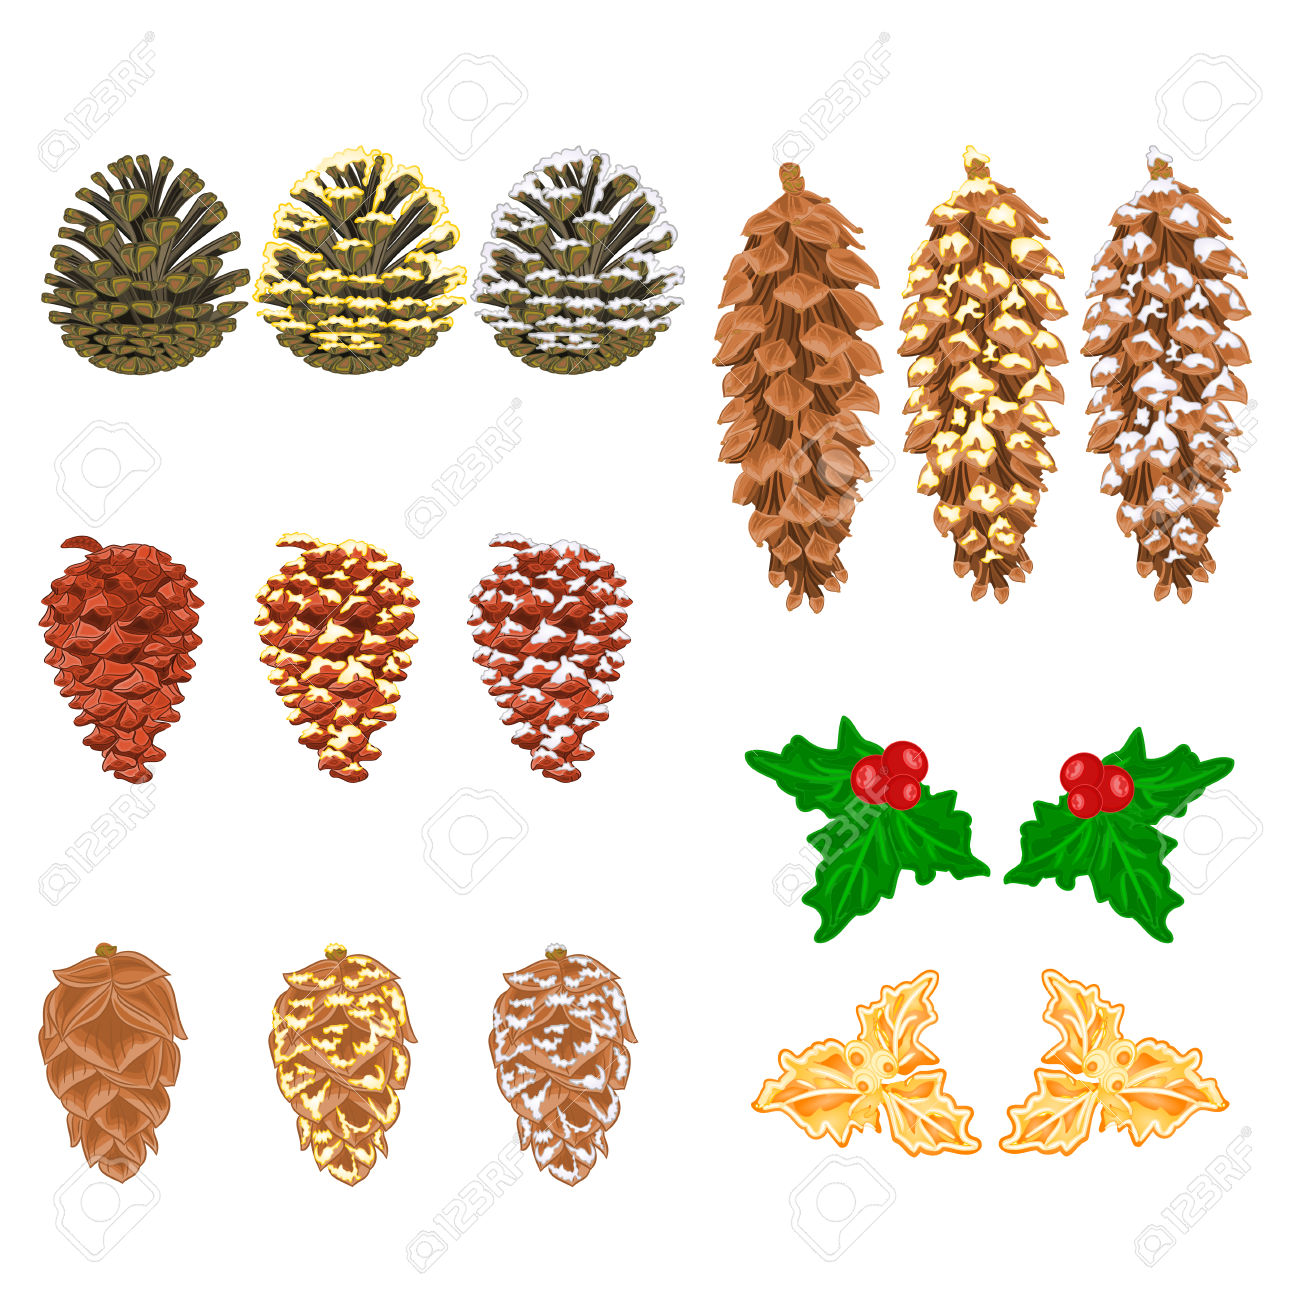 Golden Larch Stock Photos Images. Royalty Free Golden Larch Images.